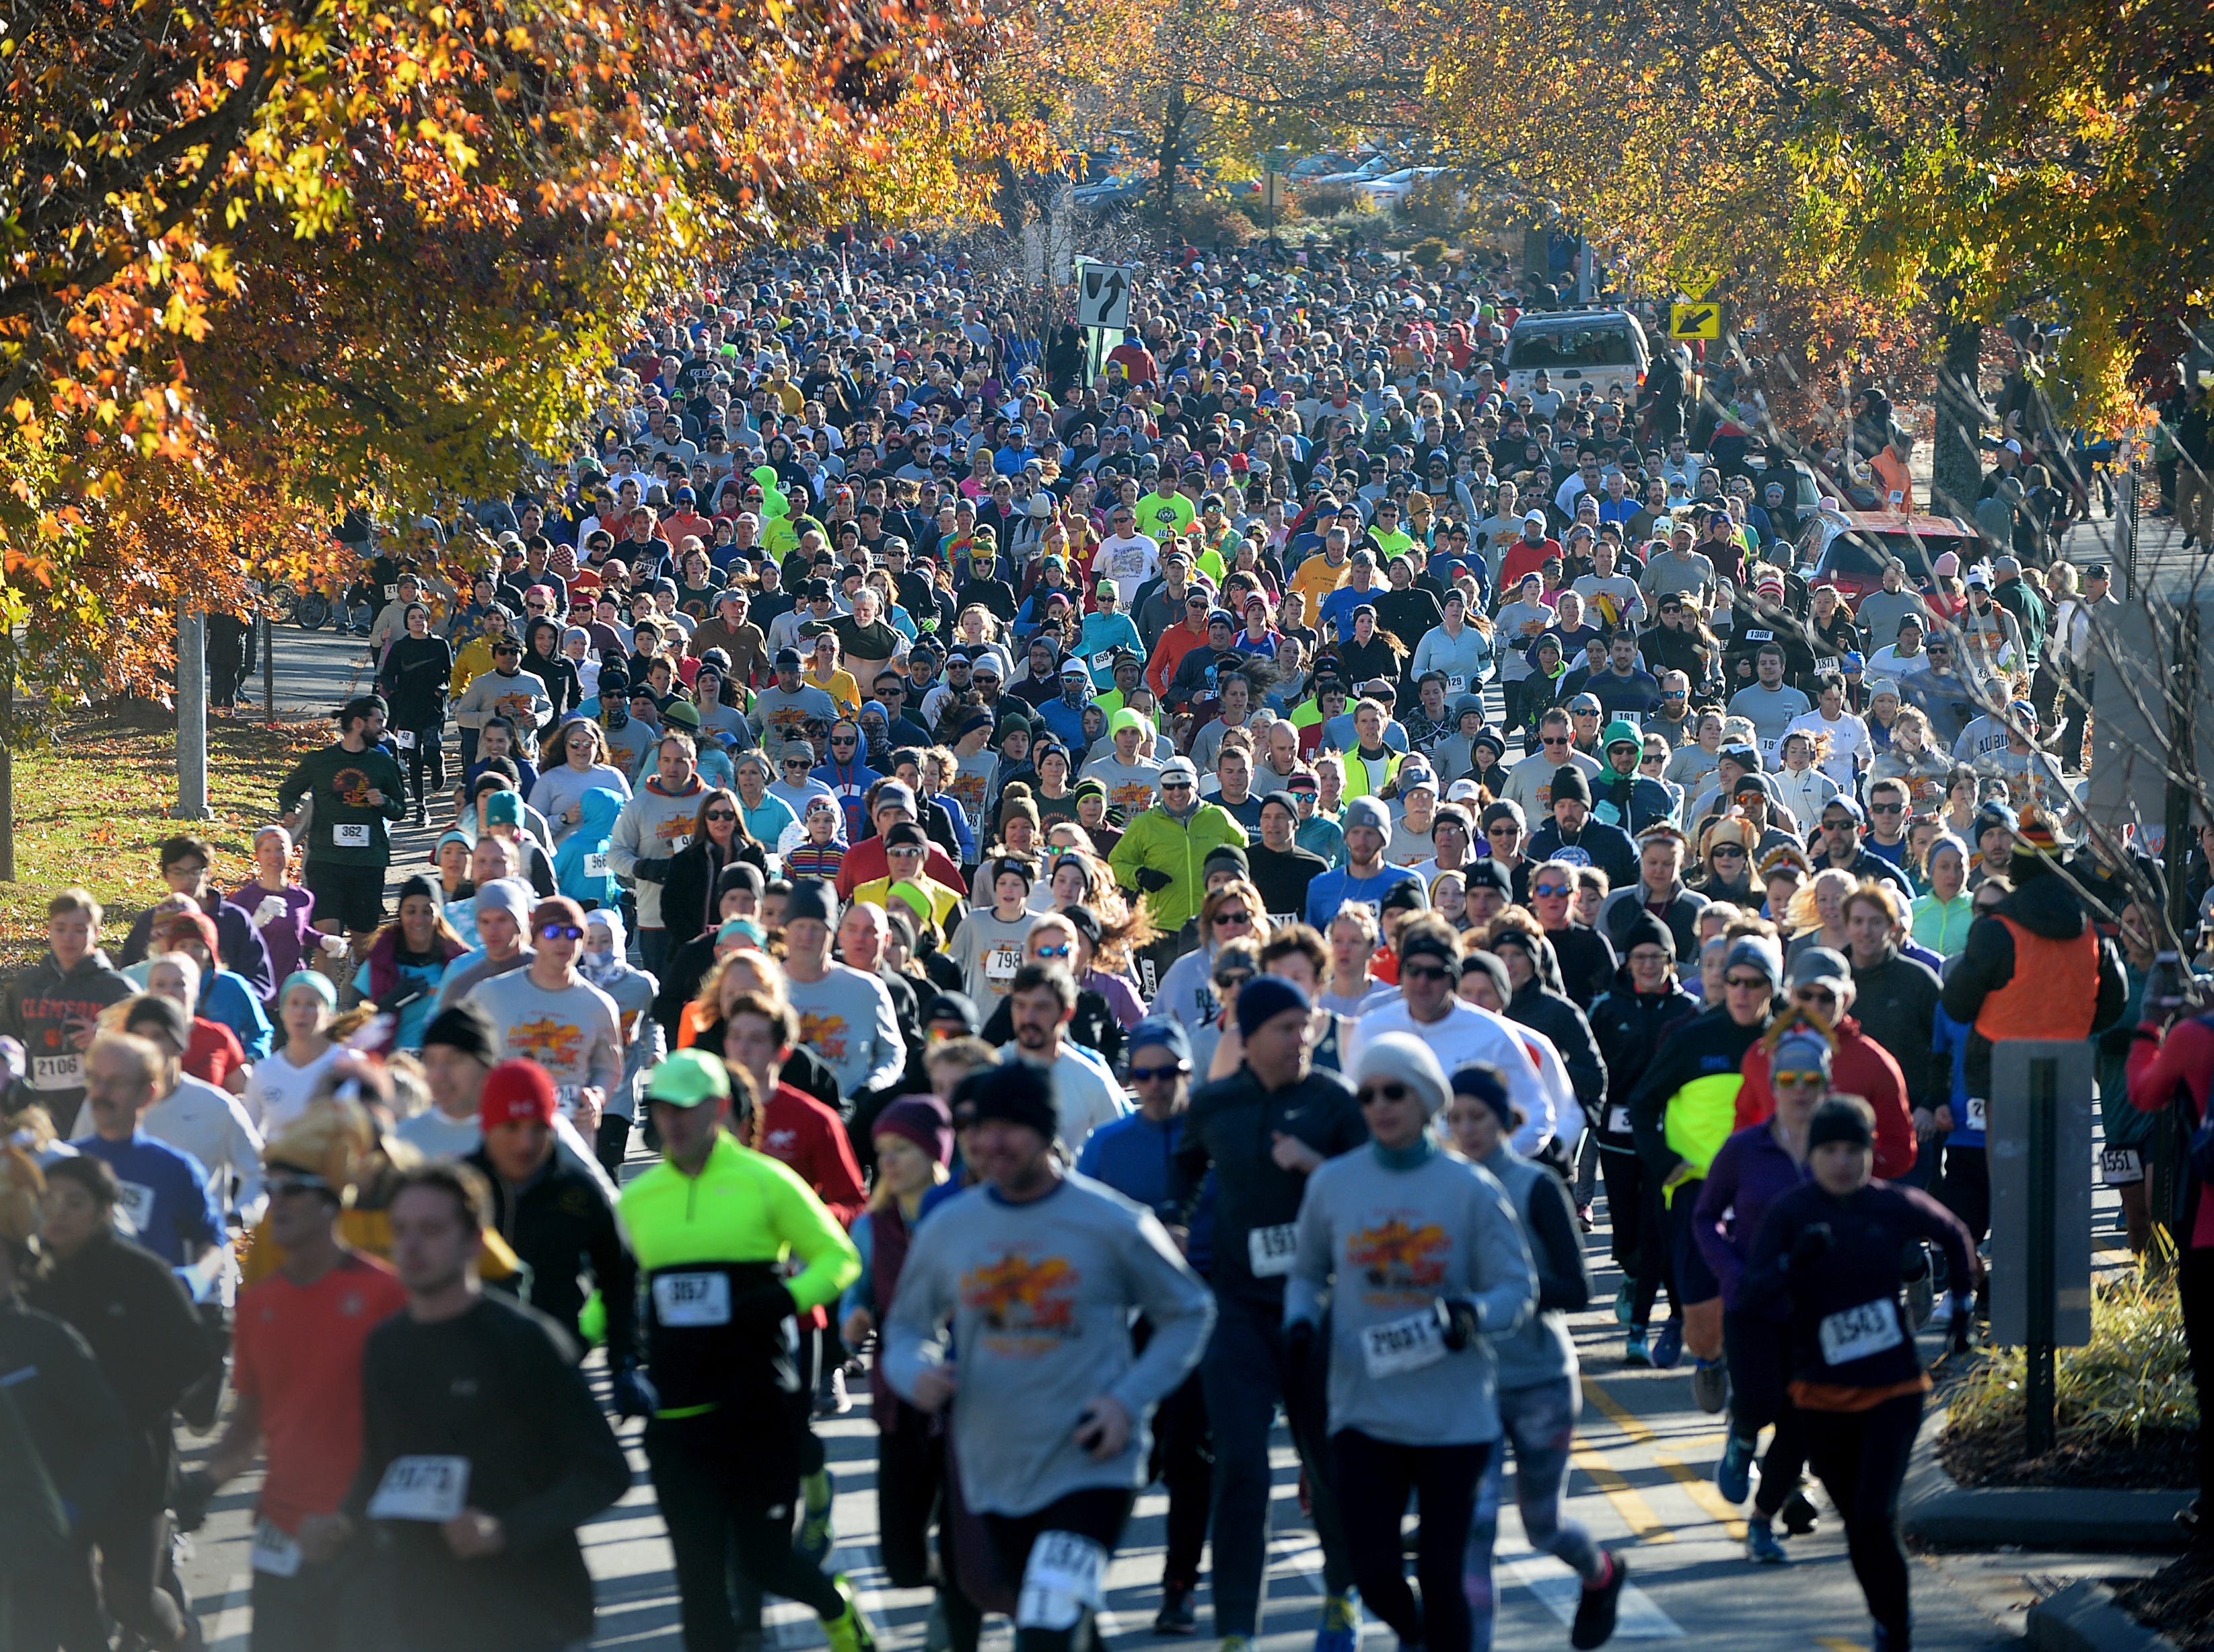 There were about 2,200 runners in the 18th annual Asheville Turkey Trot 5K on Thanksgiving Day Nov. 22, 2018.